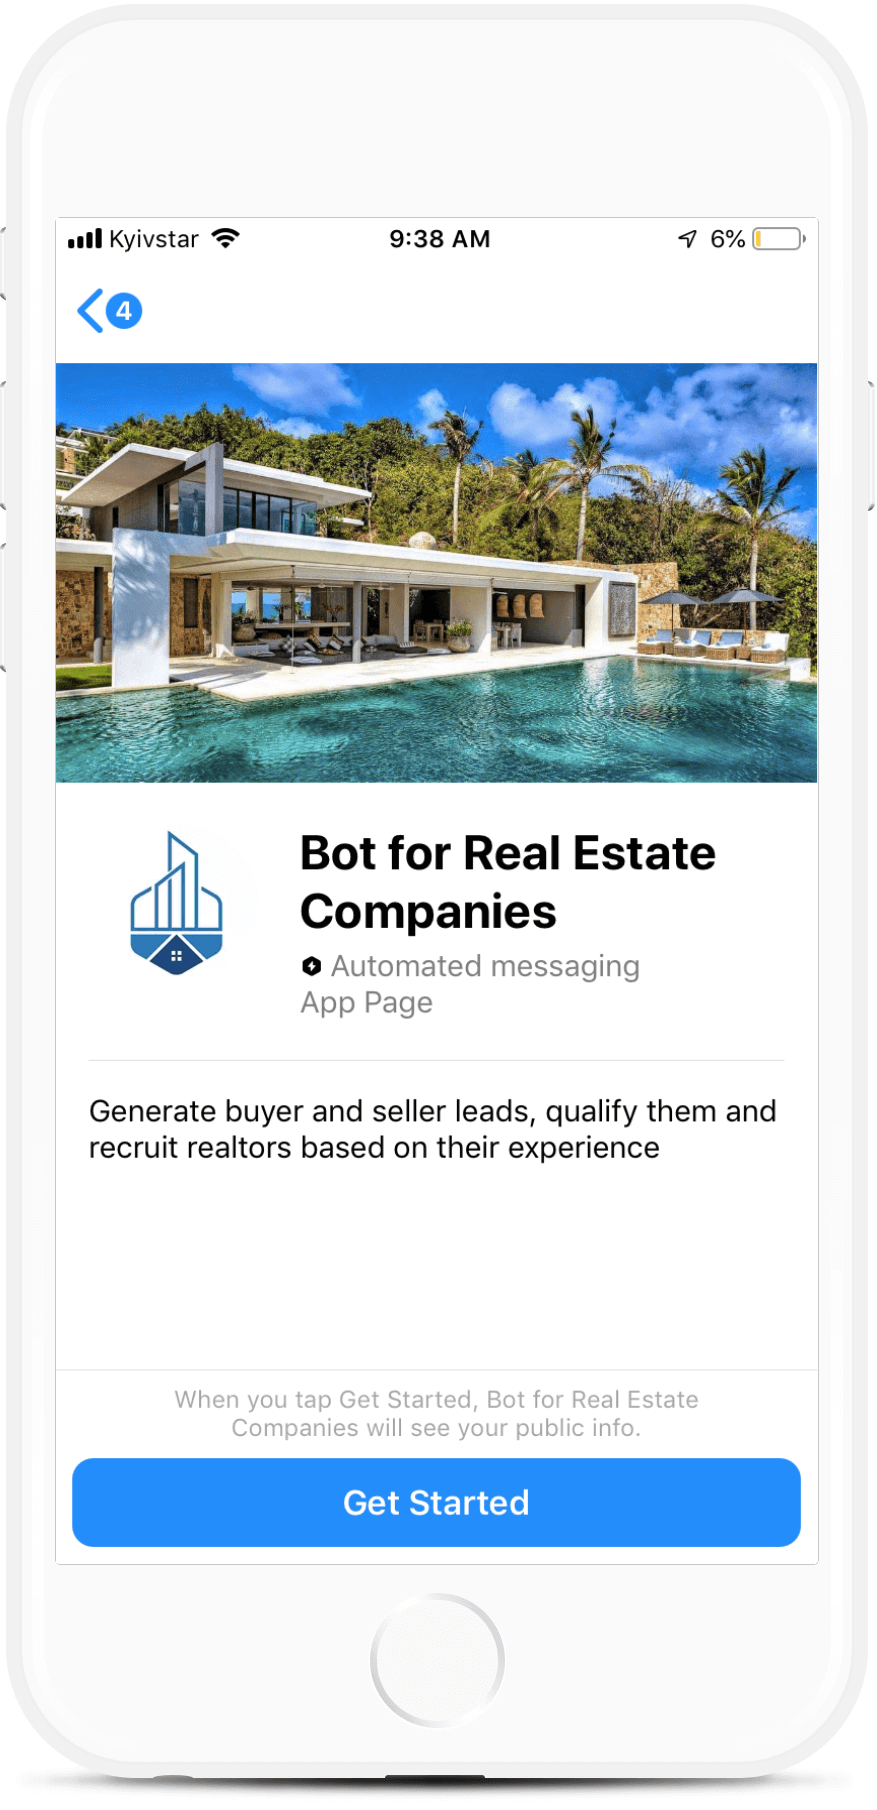 All-in-One Bot for Real Estate Companies